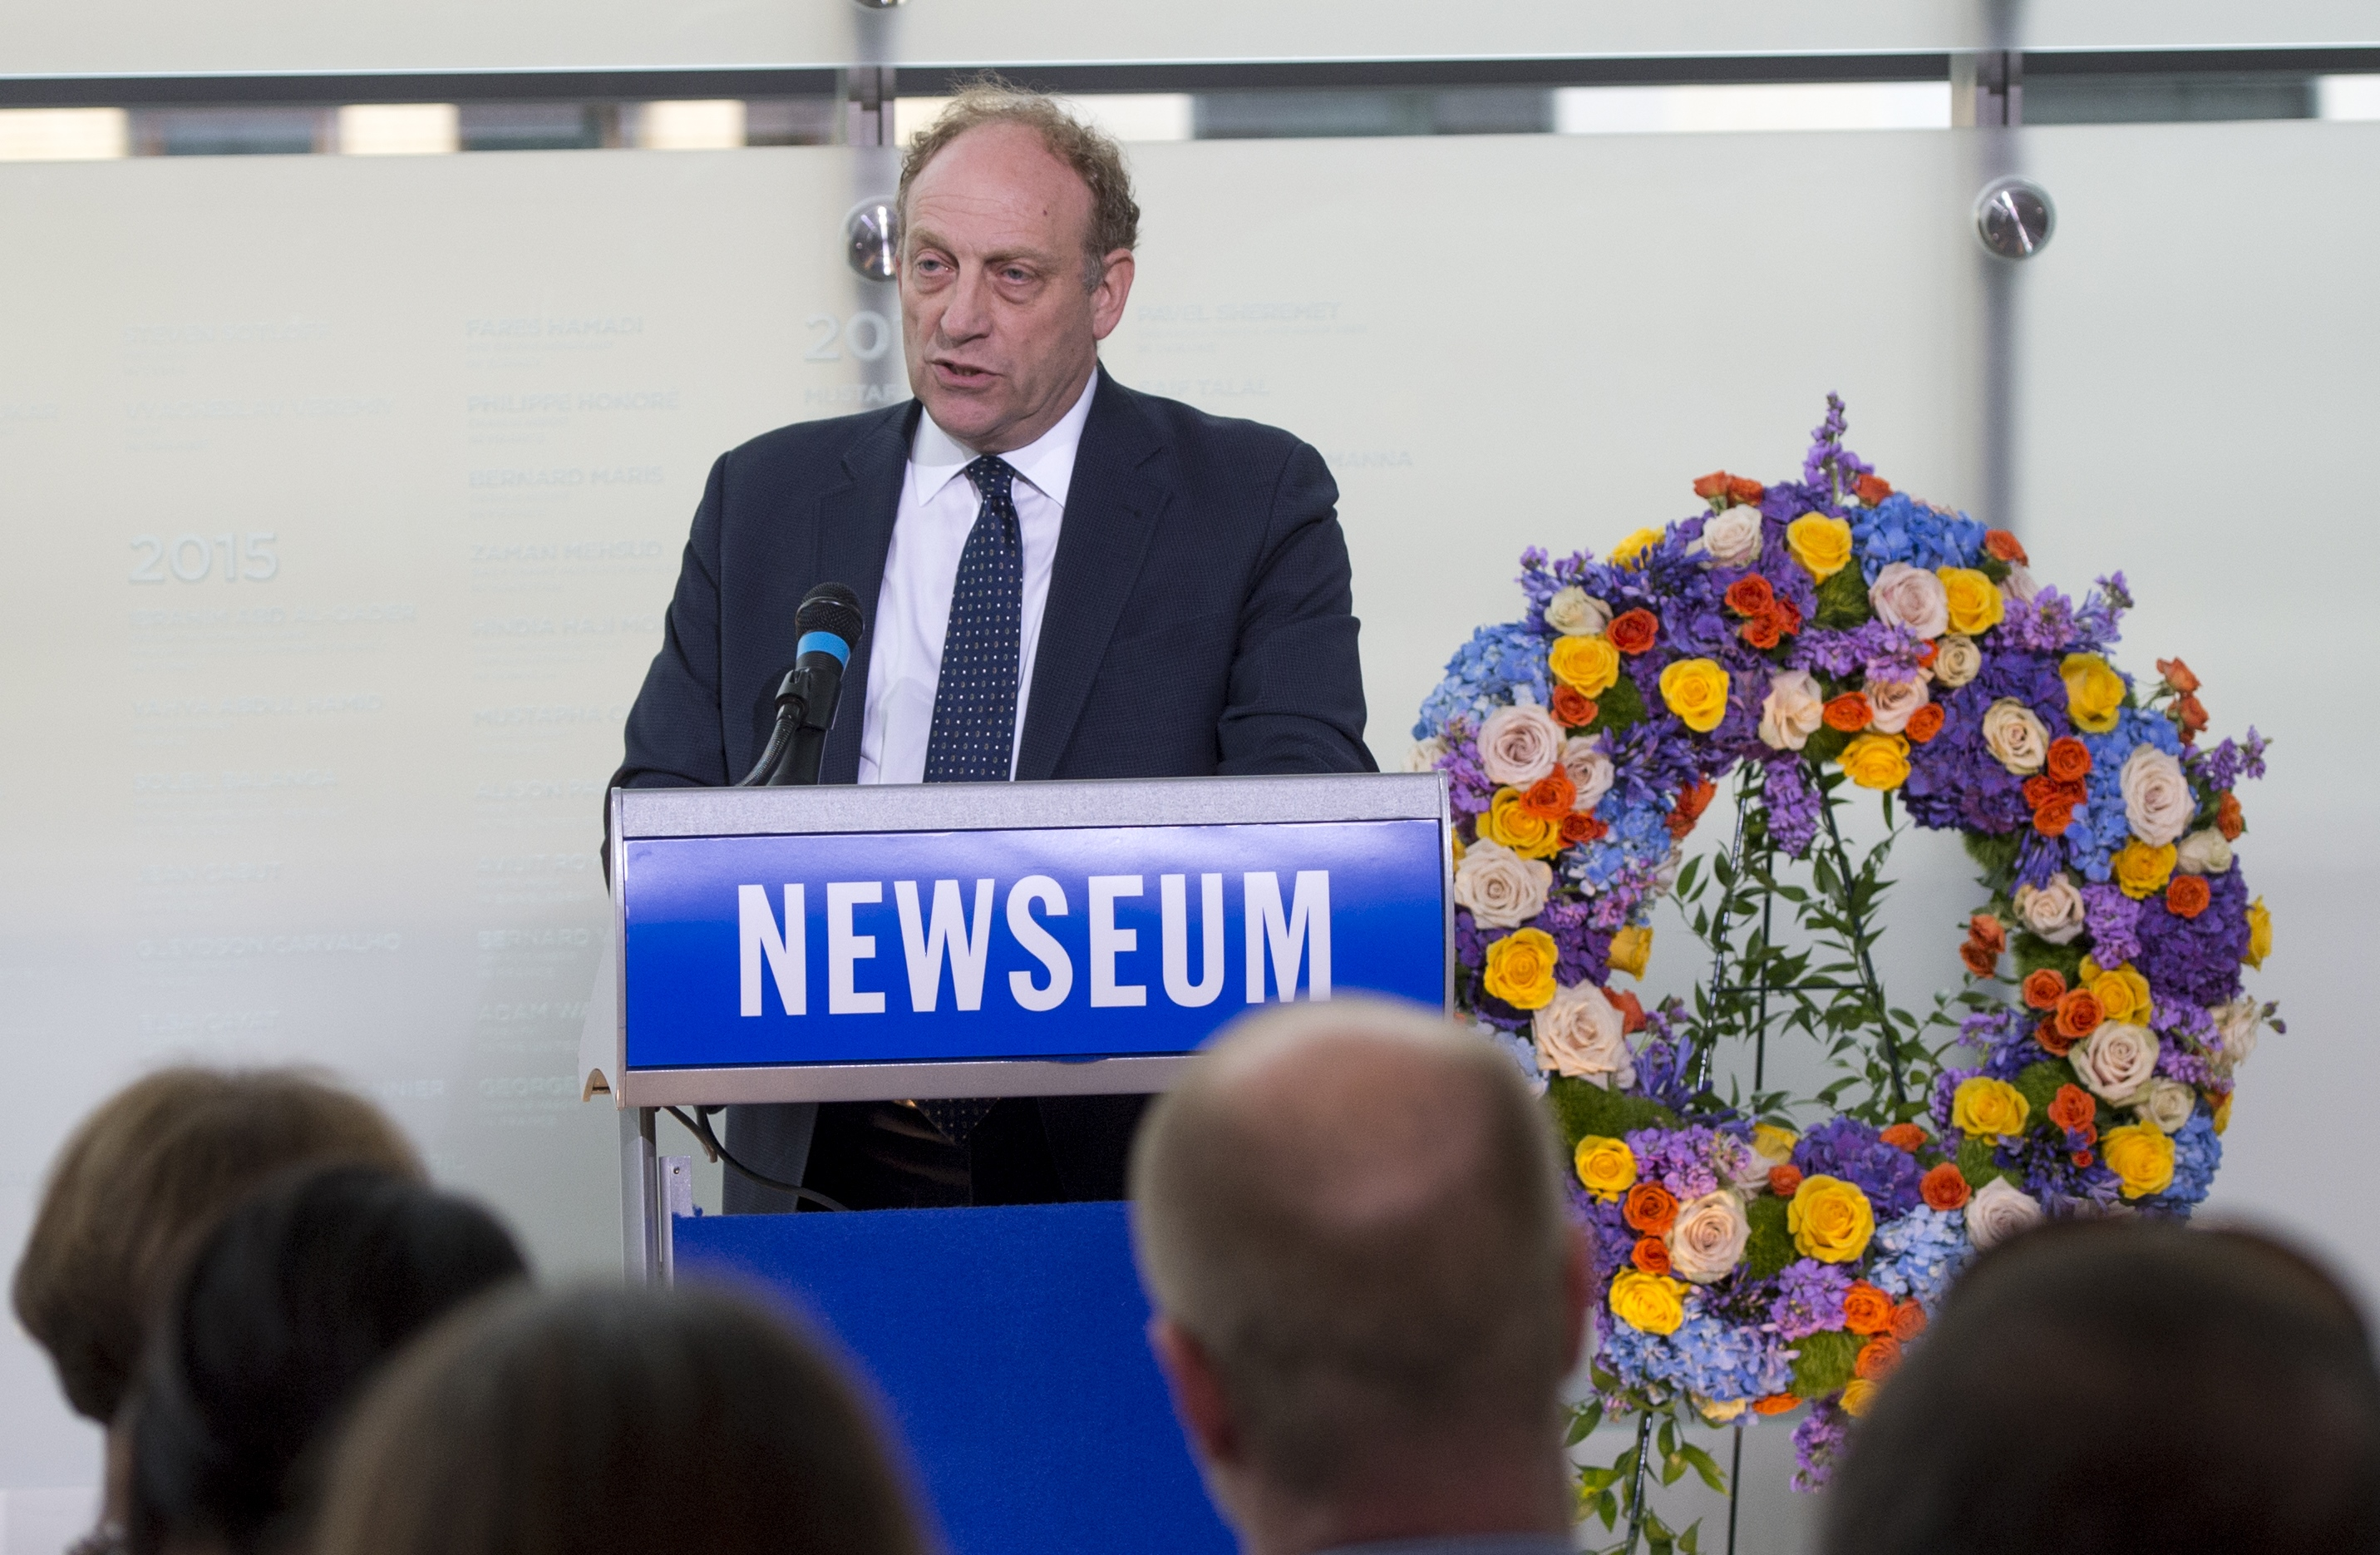 Michael Oreskes, senior vice president of news and editorial director of National Public Radio (NPR), speaks at the Newseum in Washington, DC, on June 5, 2017.